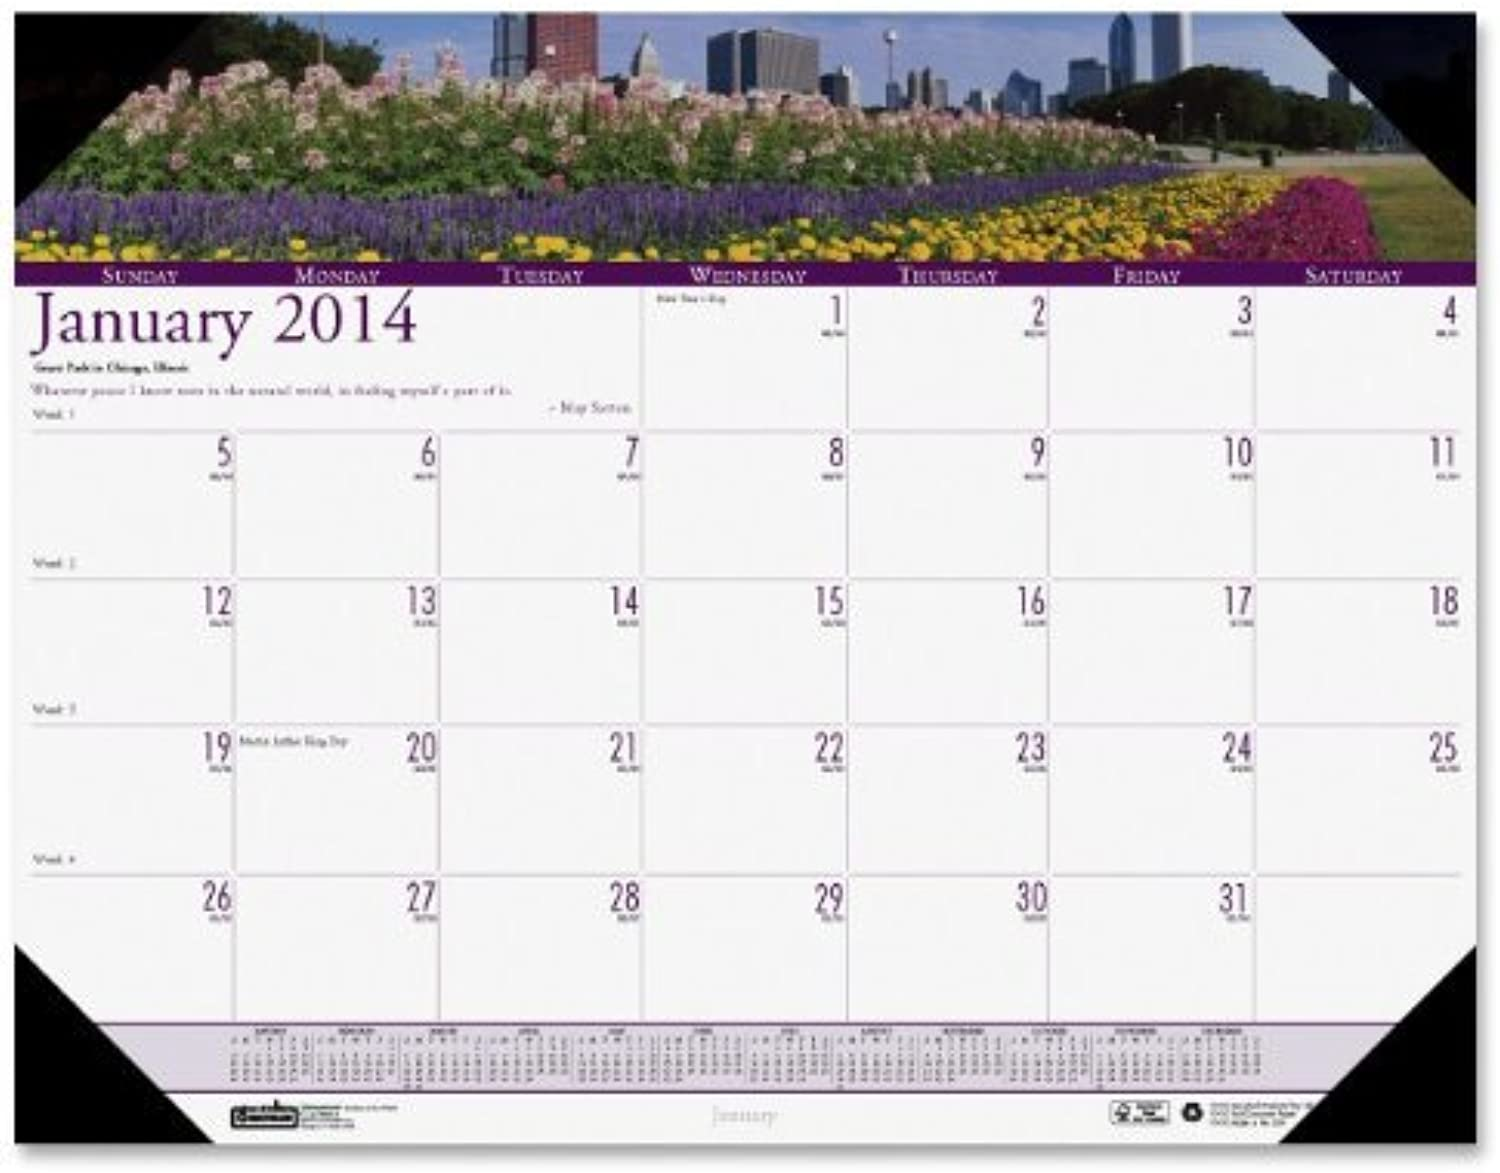 House of Doolittle Earthscapes Gardens of The World Desk Pad Calendar 12 Months January 2014 to December 2014, 22 x 17 Inches, Recycled (HOD174) by House of Doolittle B0141N4B1U | Verschiedene Arten und Stile